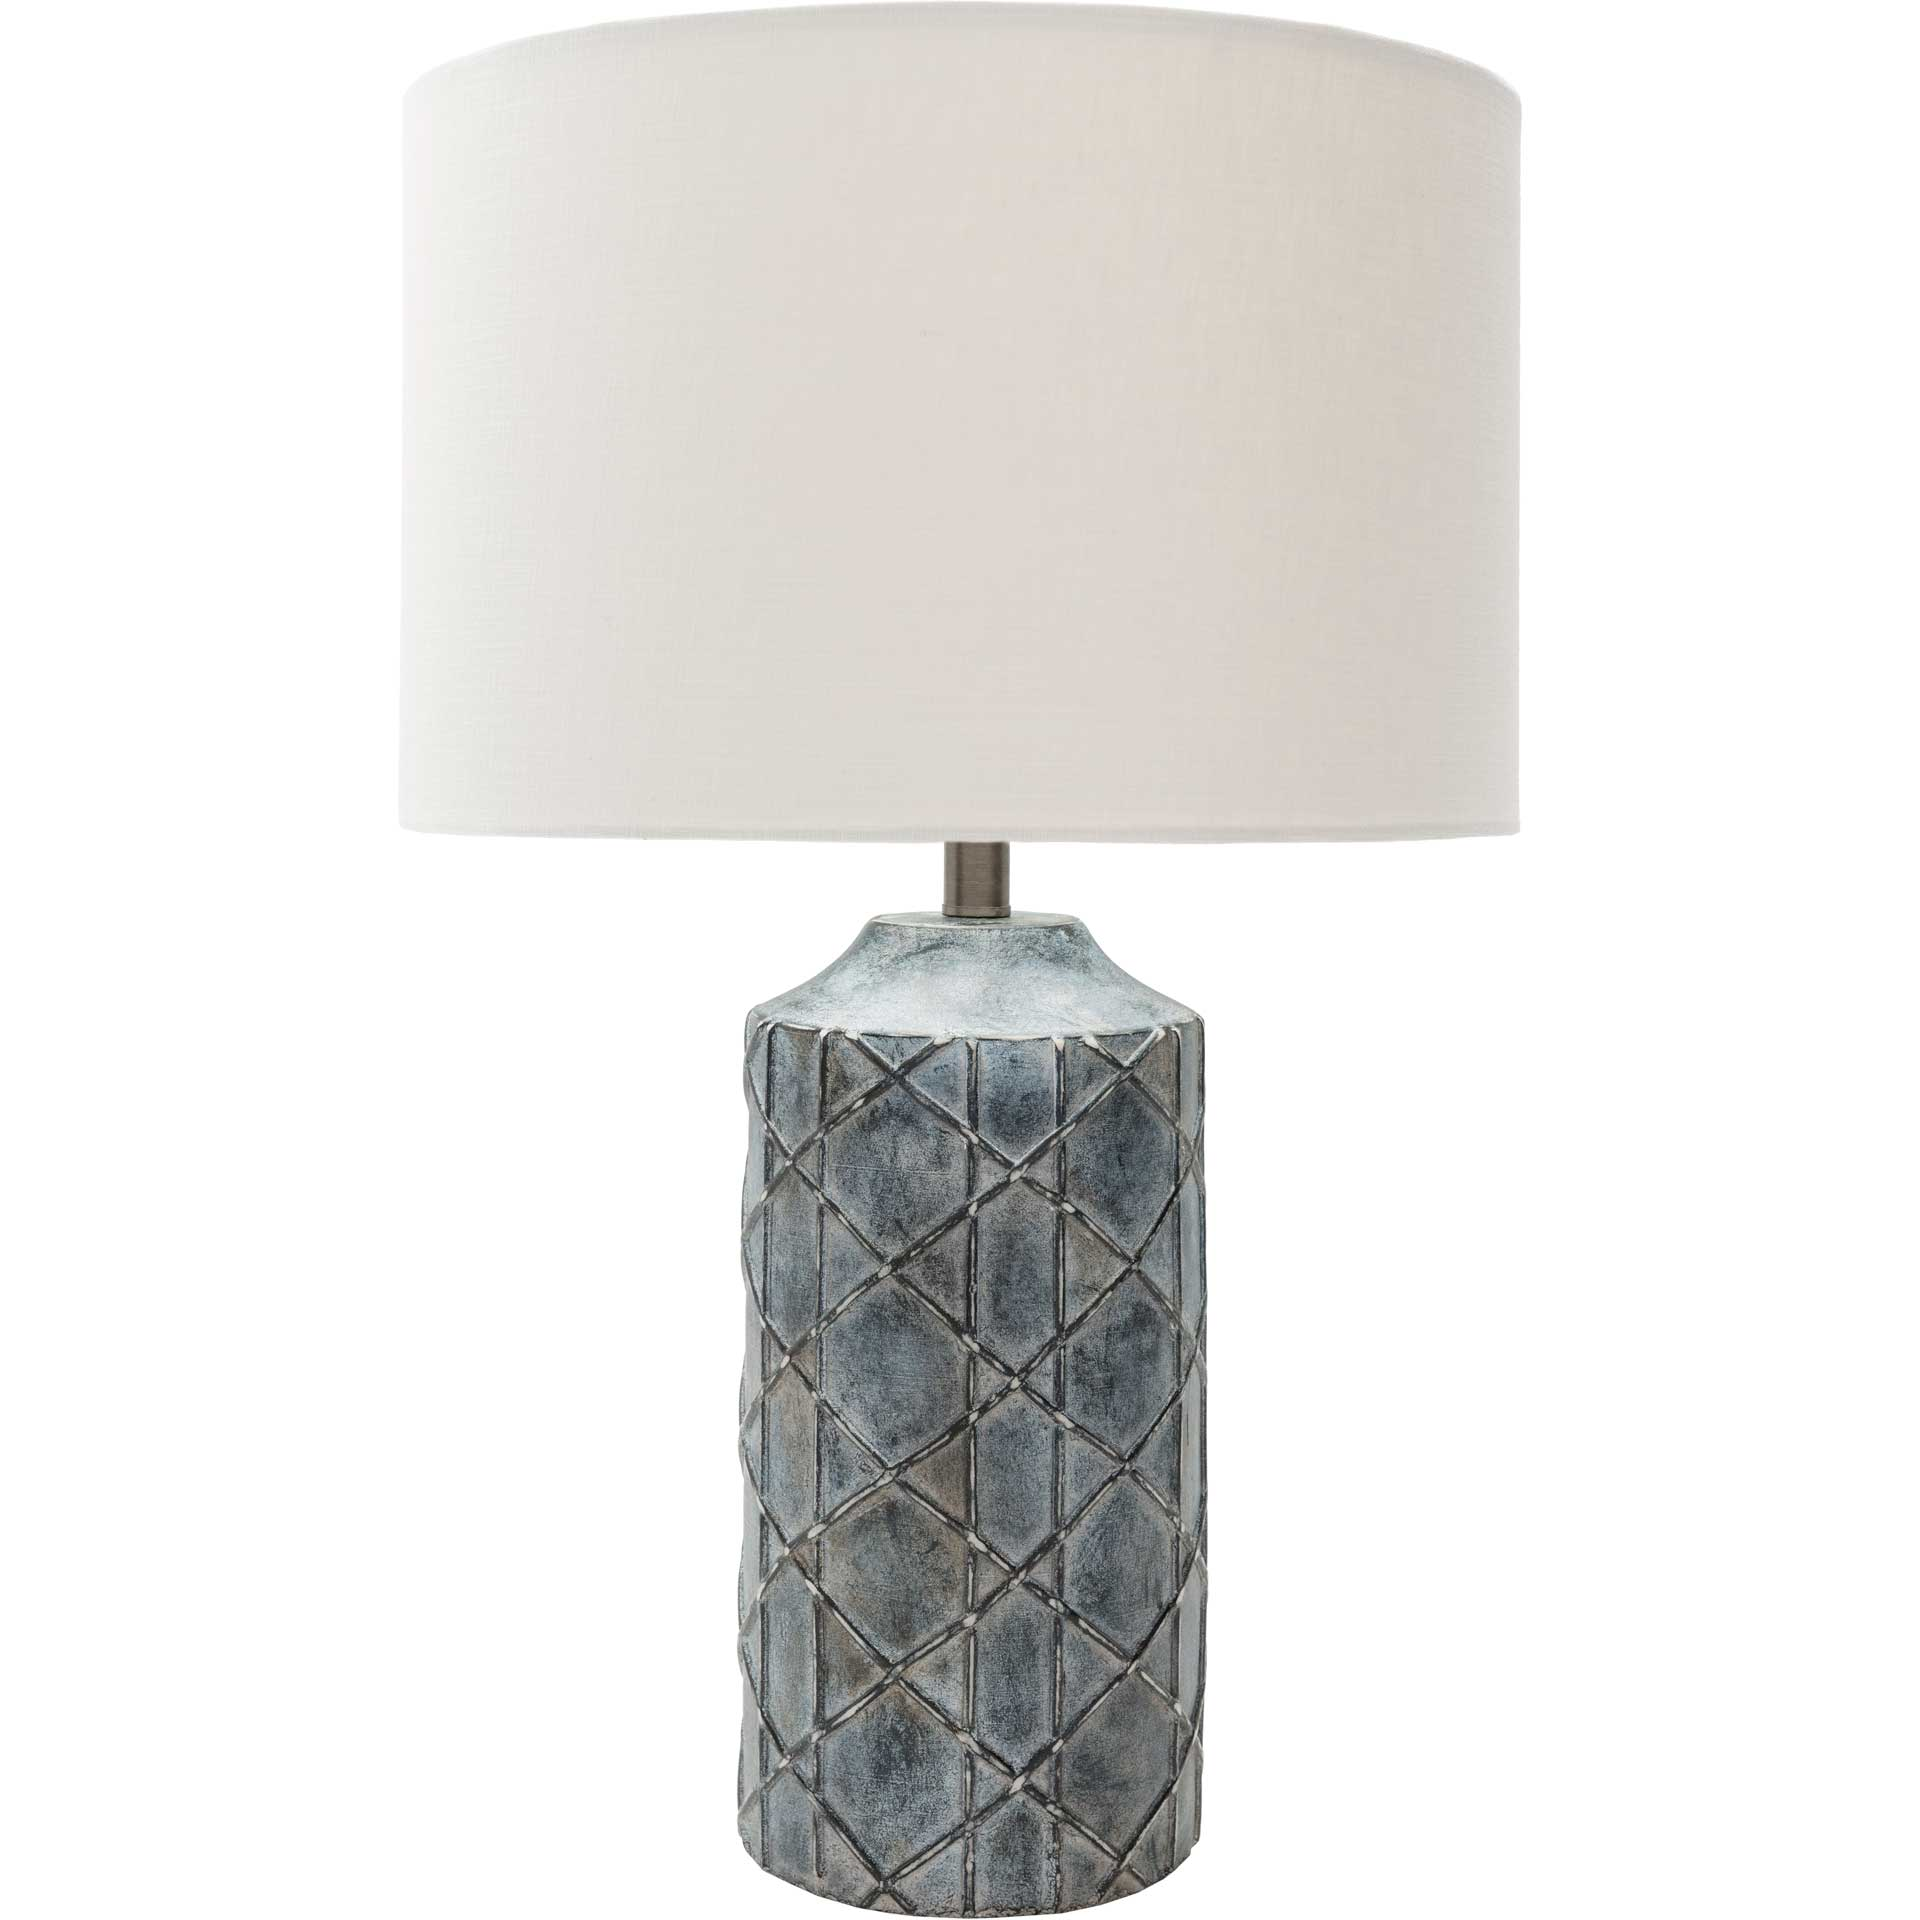 Braxton Table Lamp Charcoal/White/Slate Gray